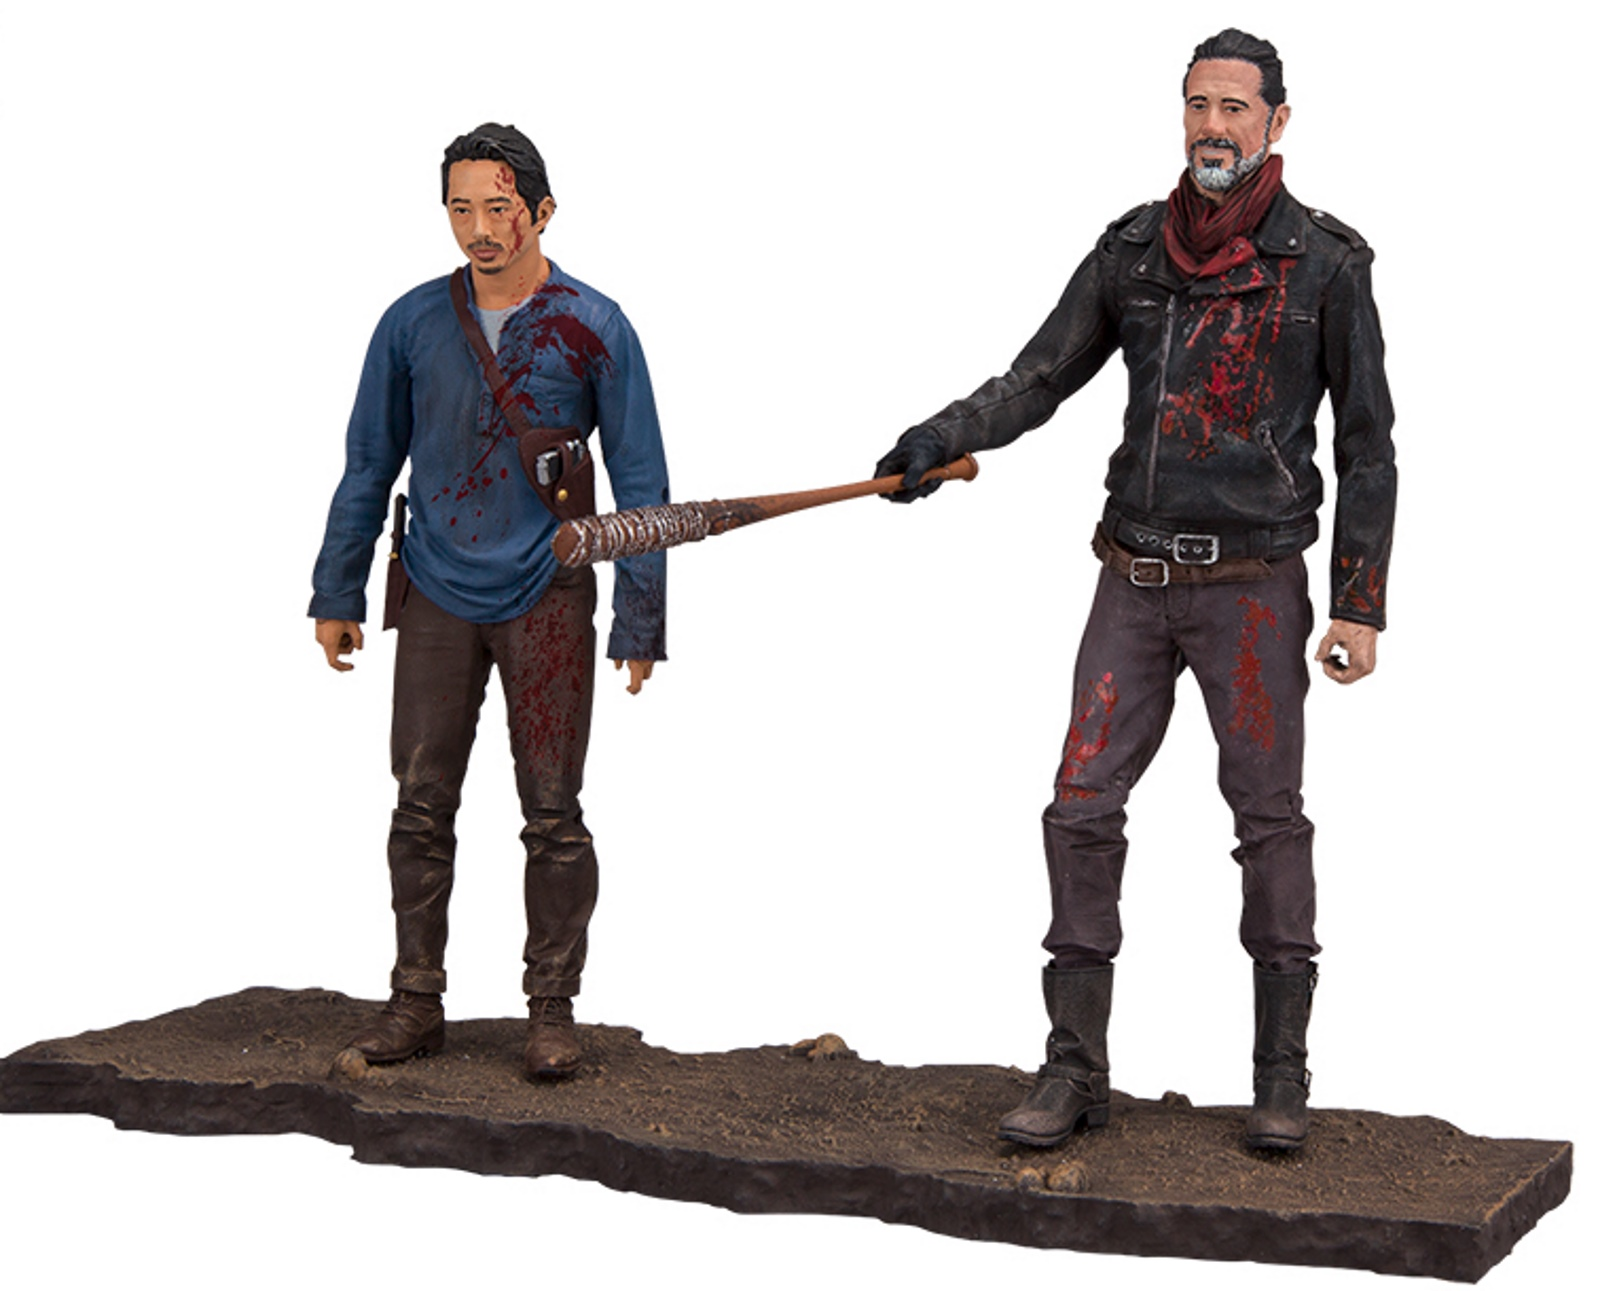 THE WALKING DEAD (TV): DELUXE BOX - NEGAN and GLENN DELUXE McFARLANE FIGURE